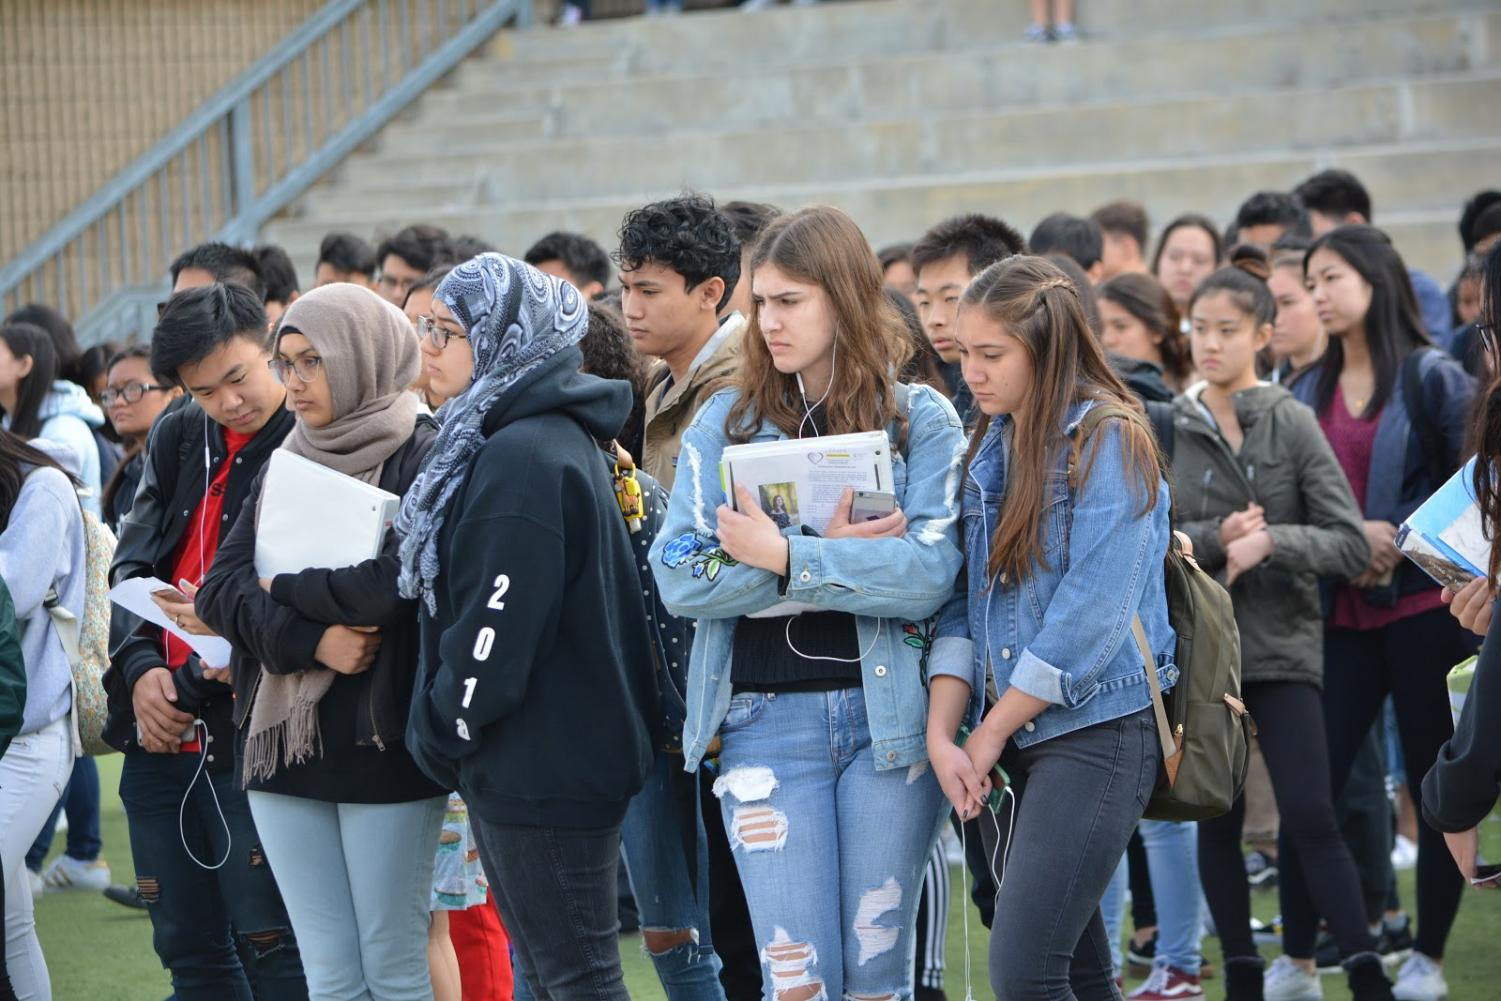 A gathering of approximately 2,200 Brahmas congregated on campus in the amphitheater to take a stand during the DBHS walk-out at brunch on March 14.